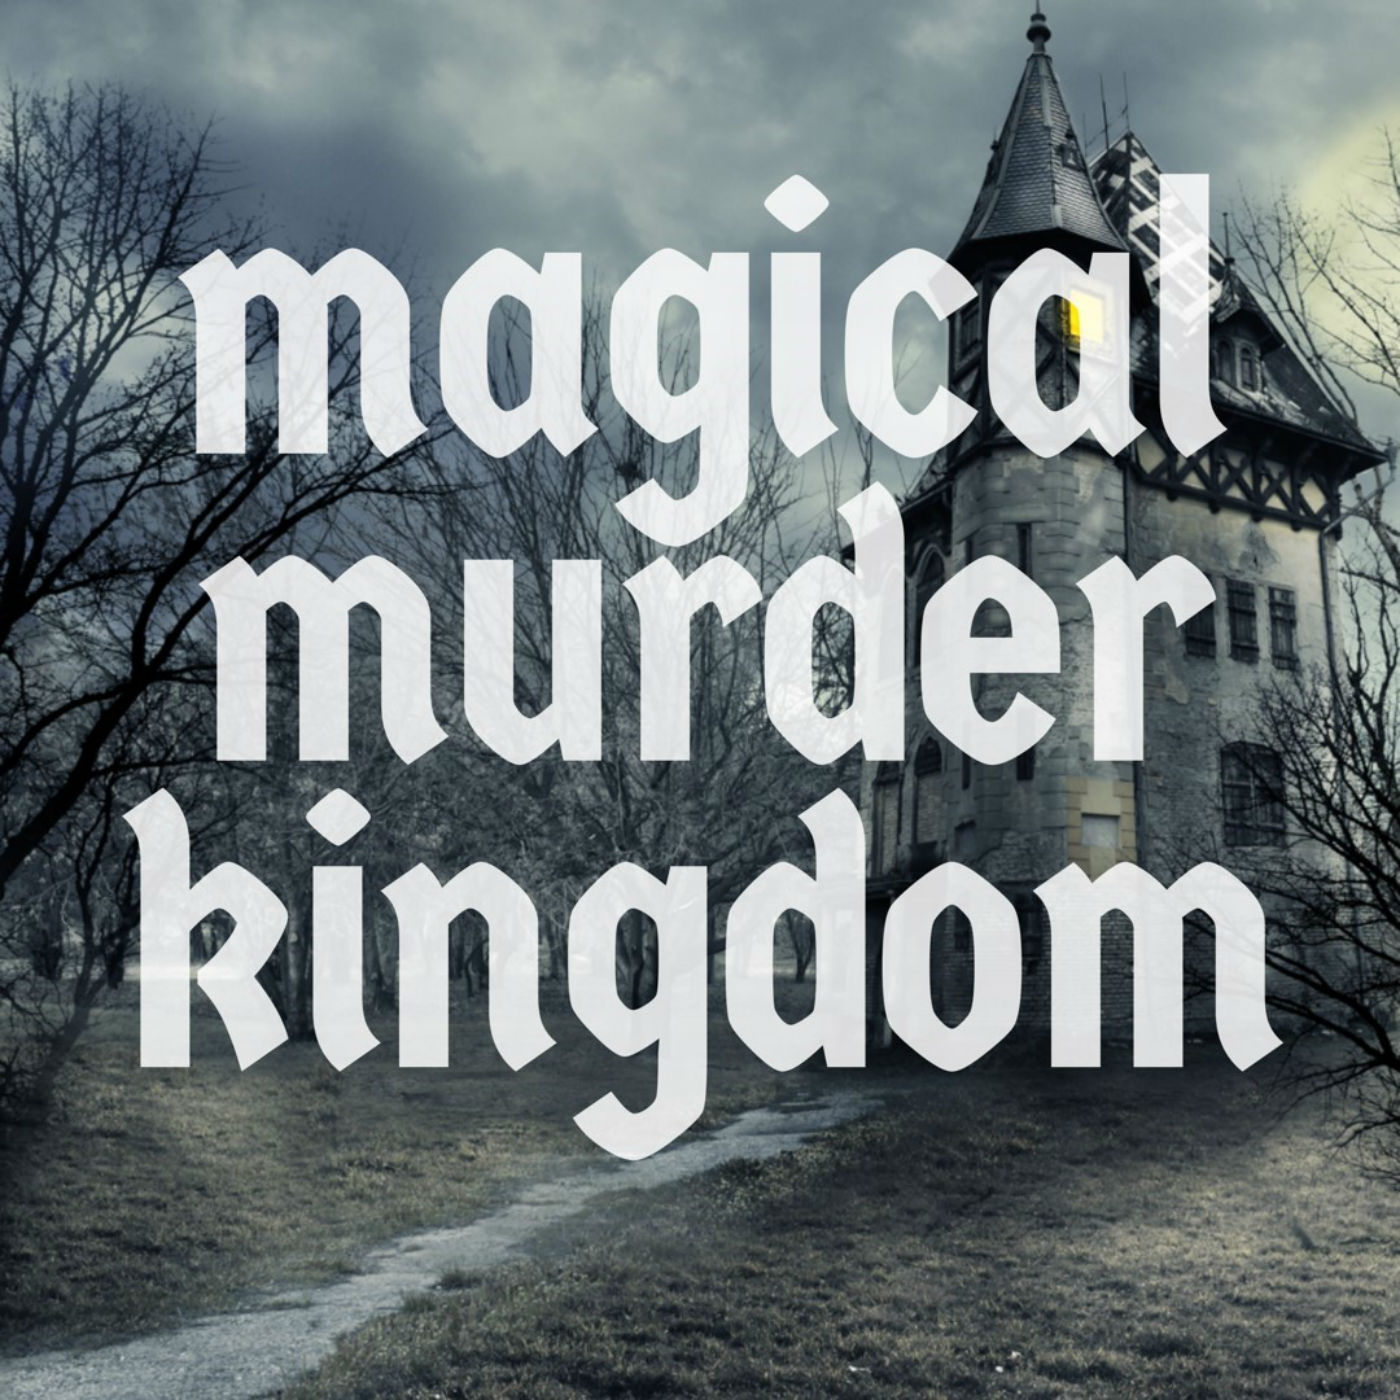 Magical Murder Kingdom